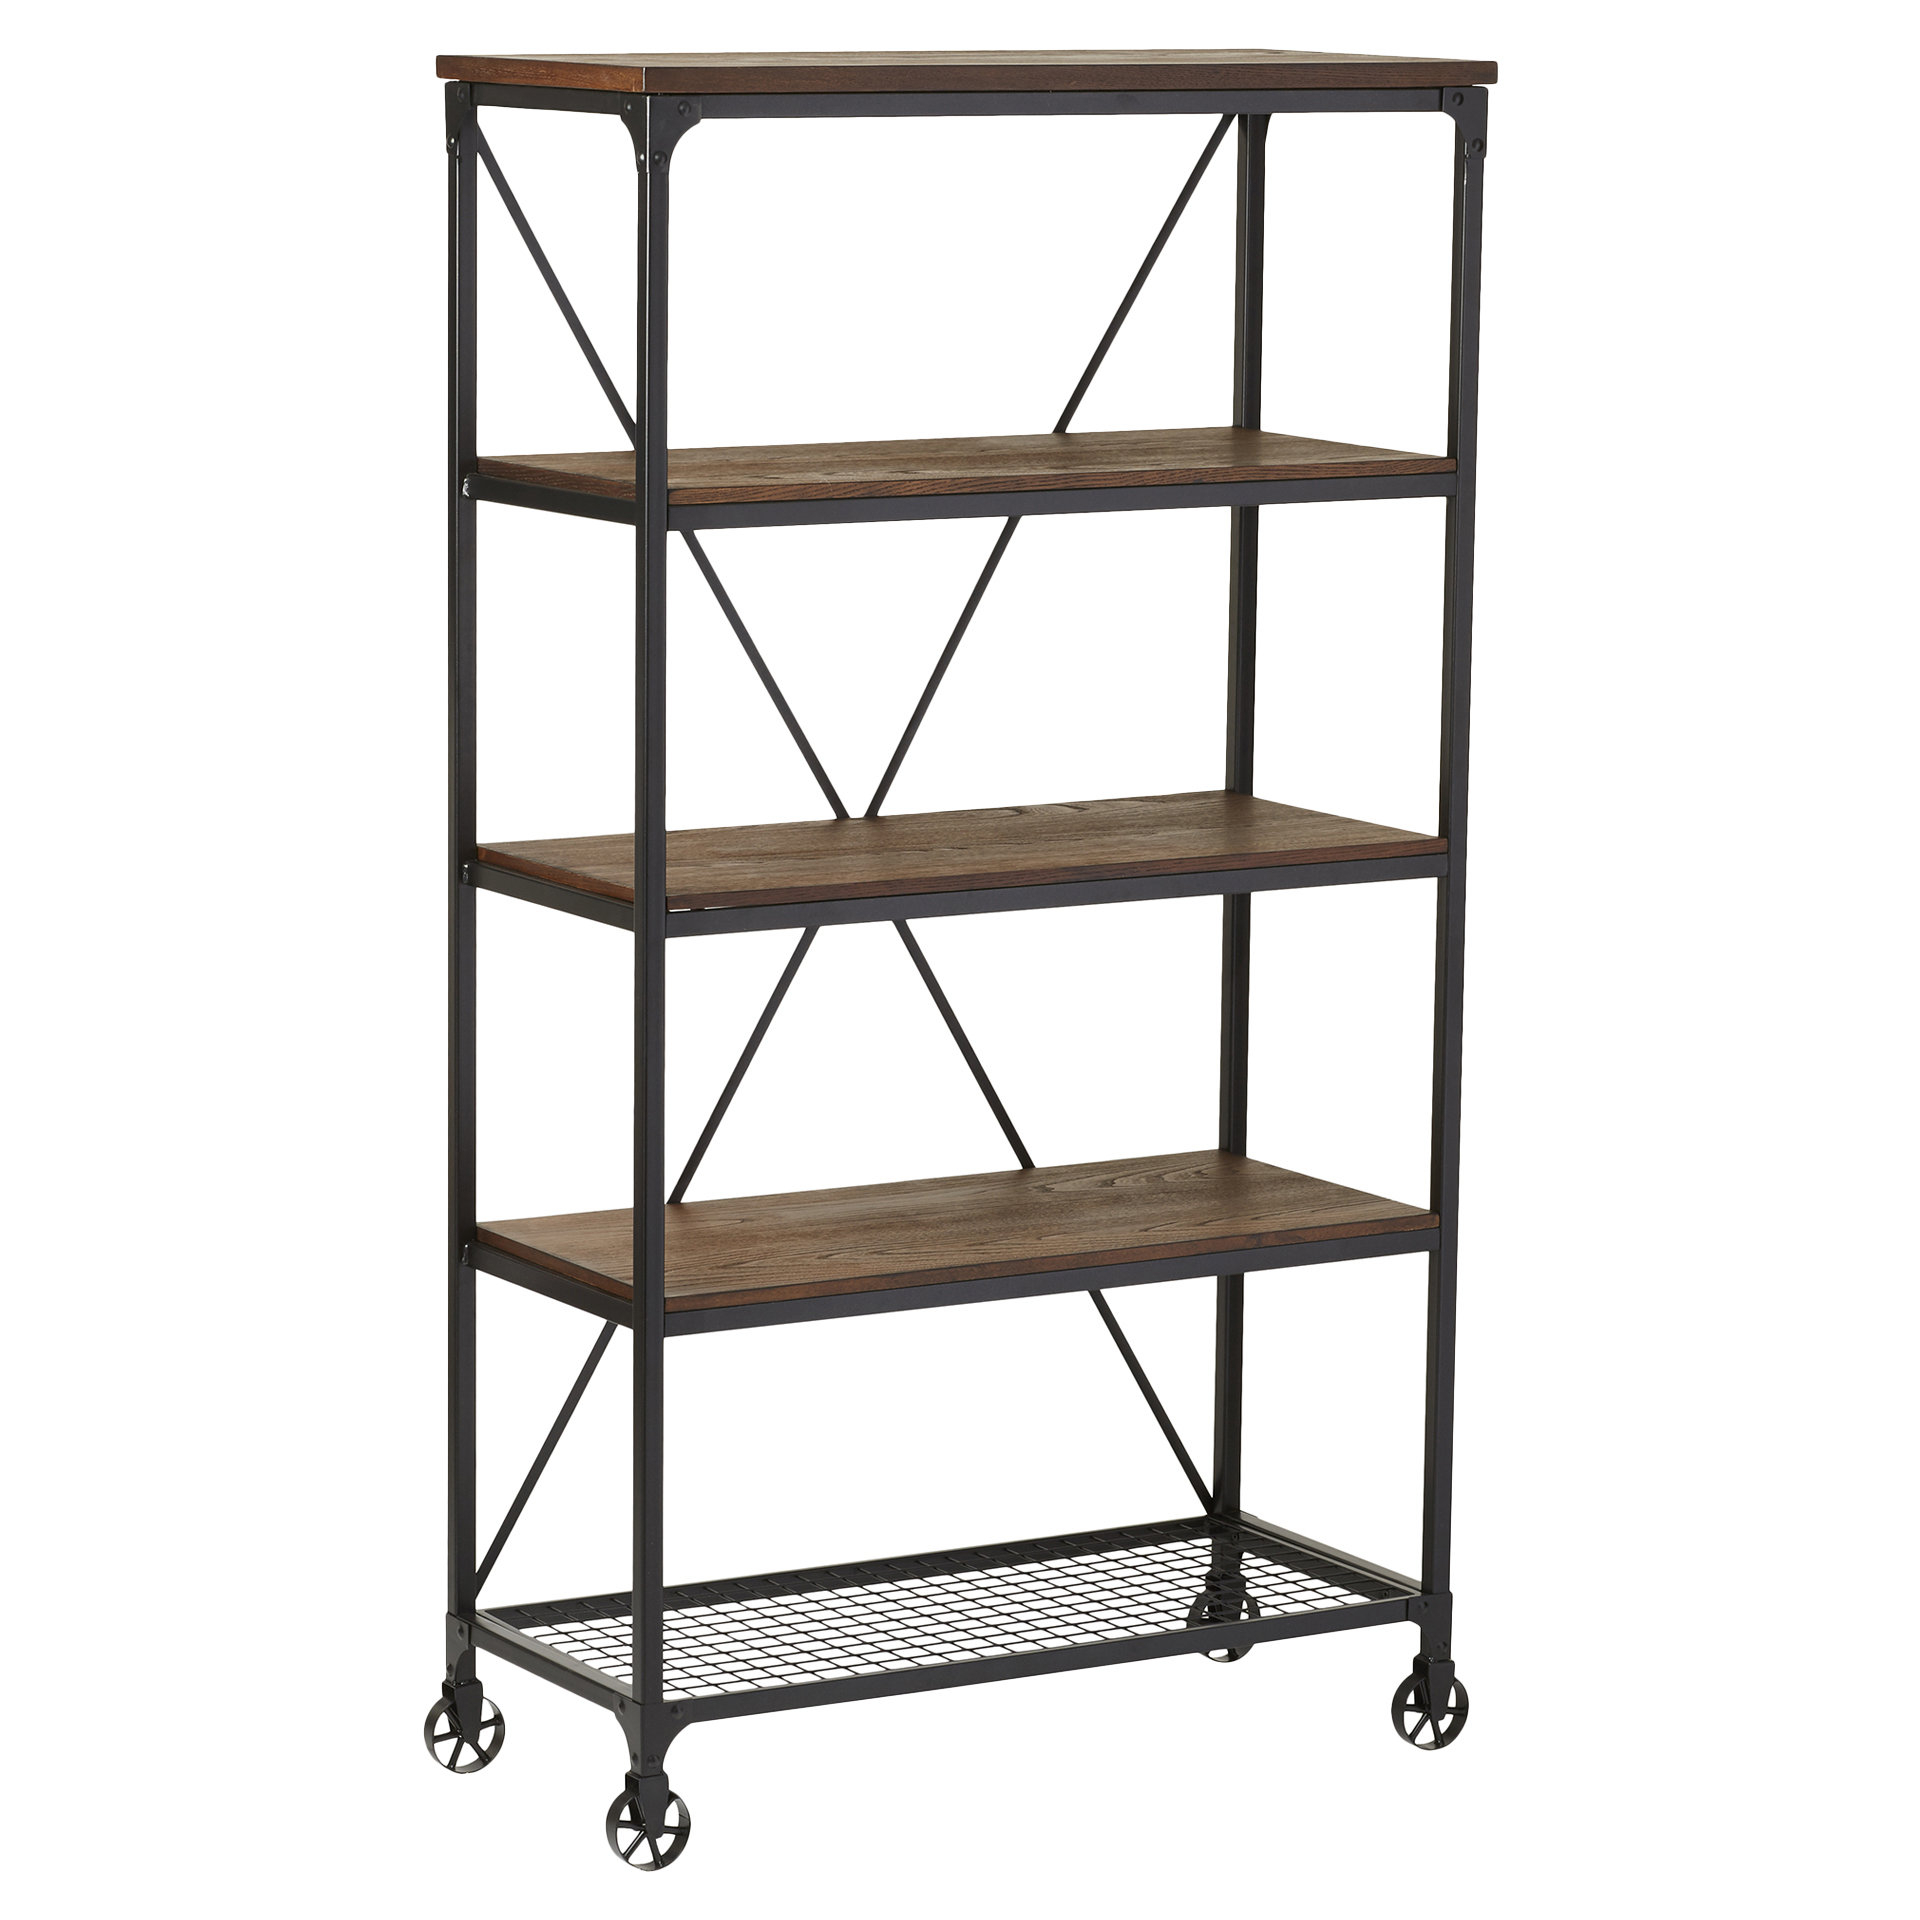 Most Recent Beckwith Etagere Bookcases Regarding Kilmersdon Etagere Bookcase (View 15 of 20)